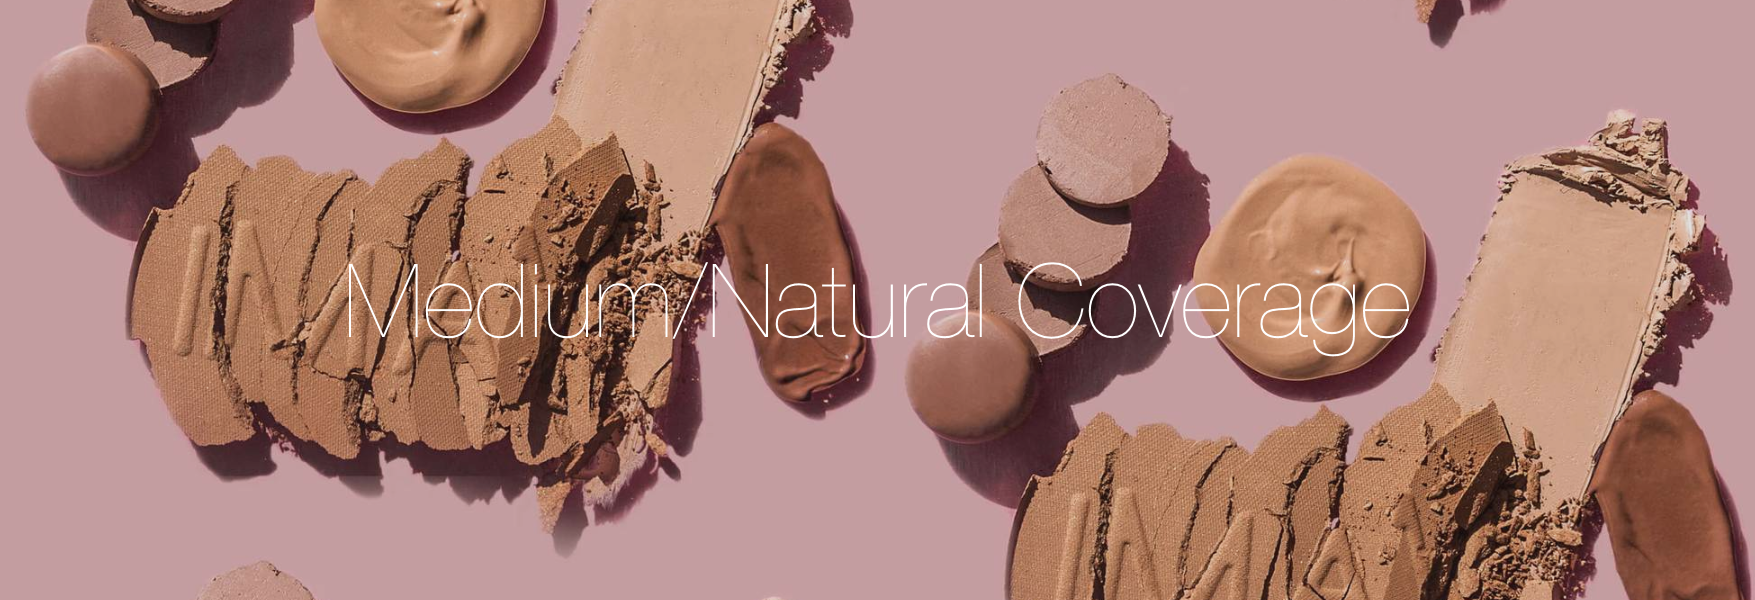 MEDIUM-NATURAL-COVERAGE